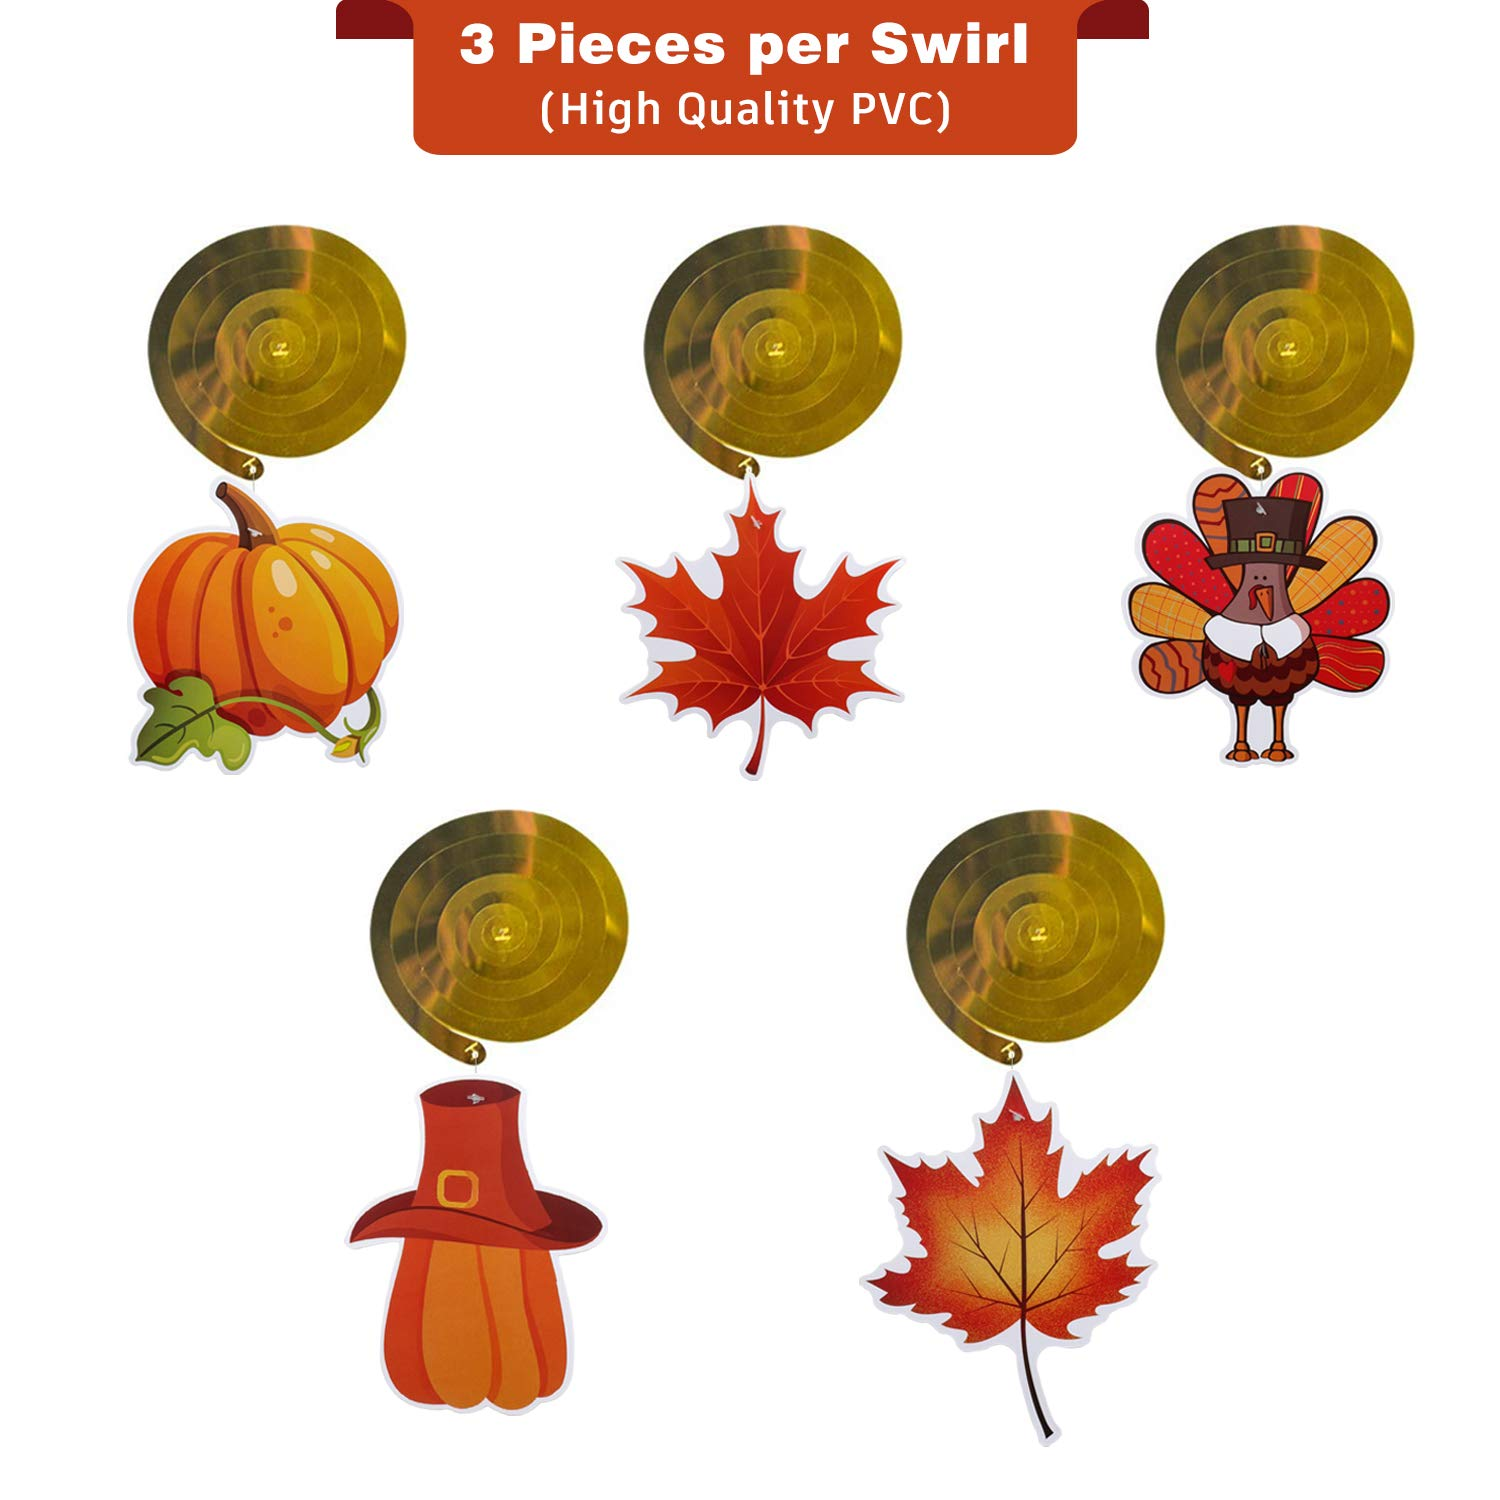 SEVENS Hanging Swirls Thanksgiving Decoration Pack of 30, Pumpkin Maple Leaf TurkeyFall Decorations Supplies for Themed Party, Ceiling, Office, Outdoor Garden